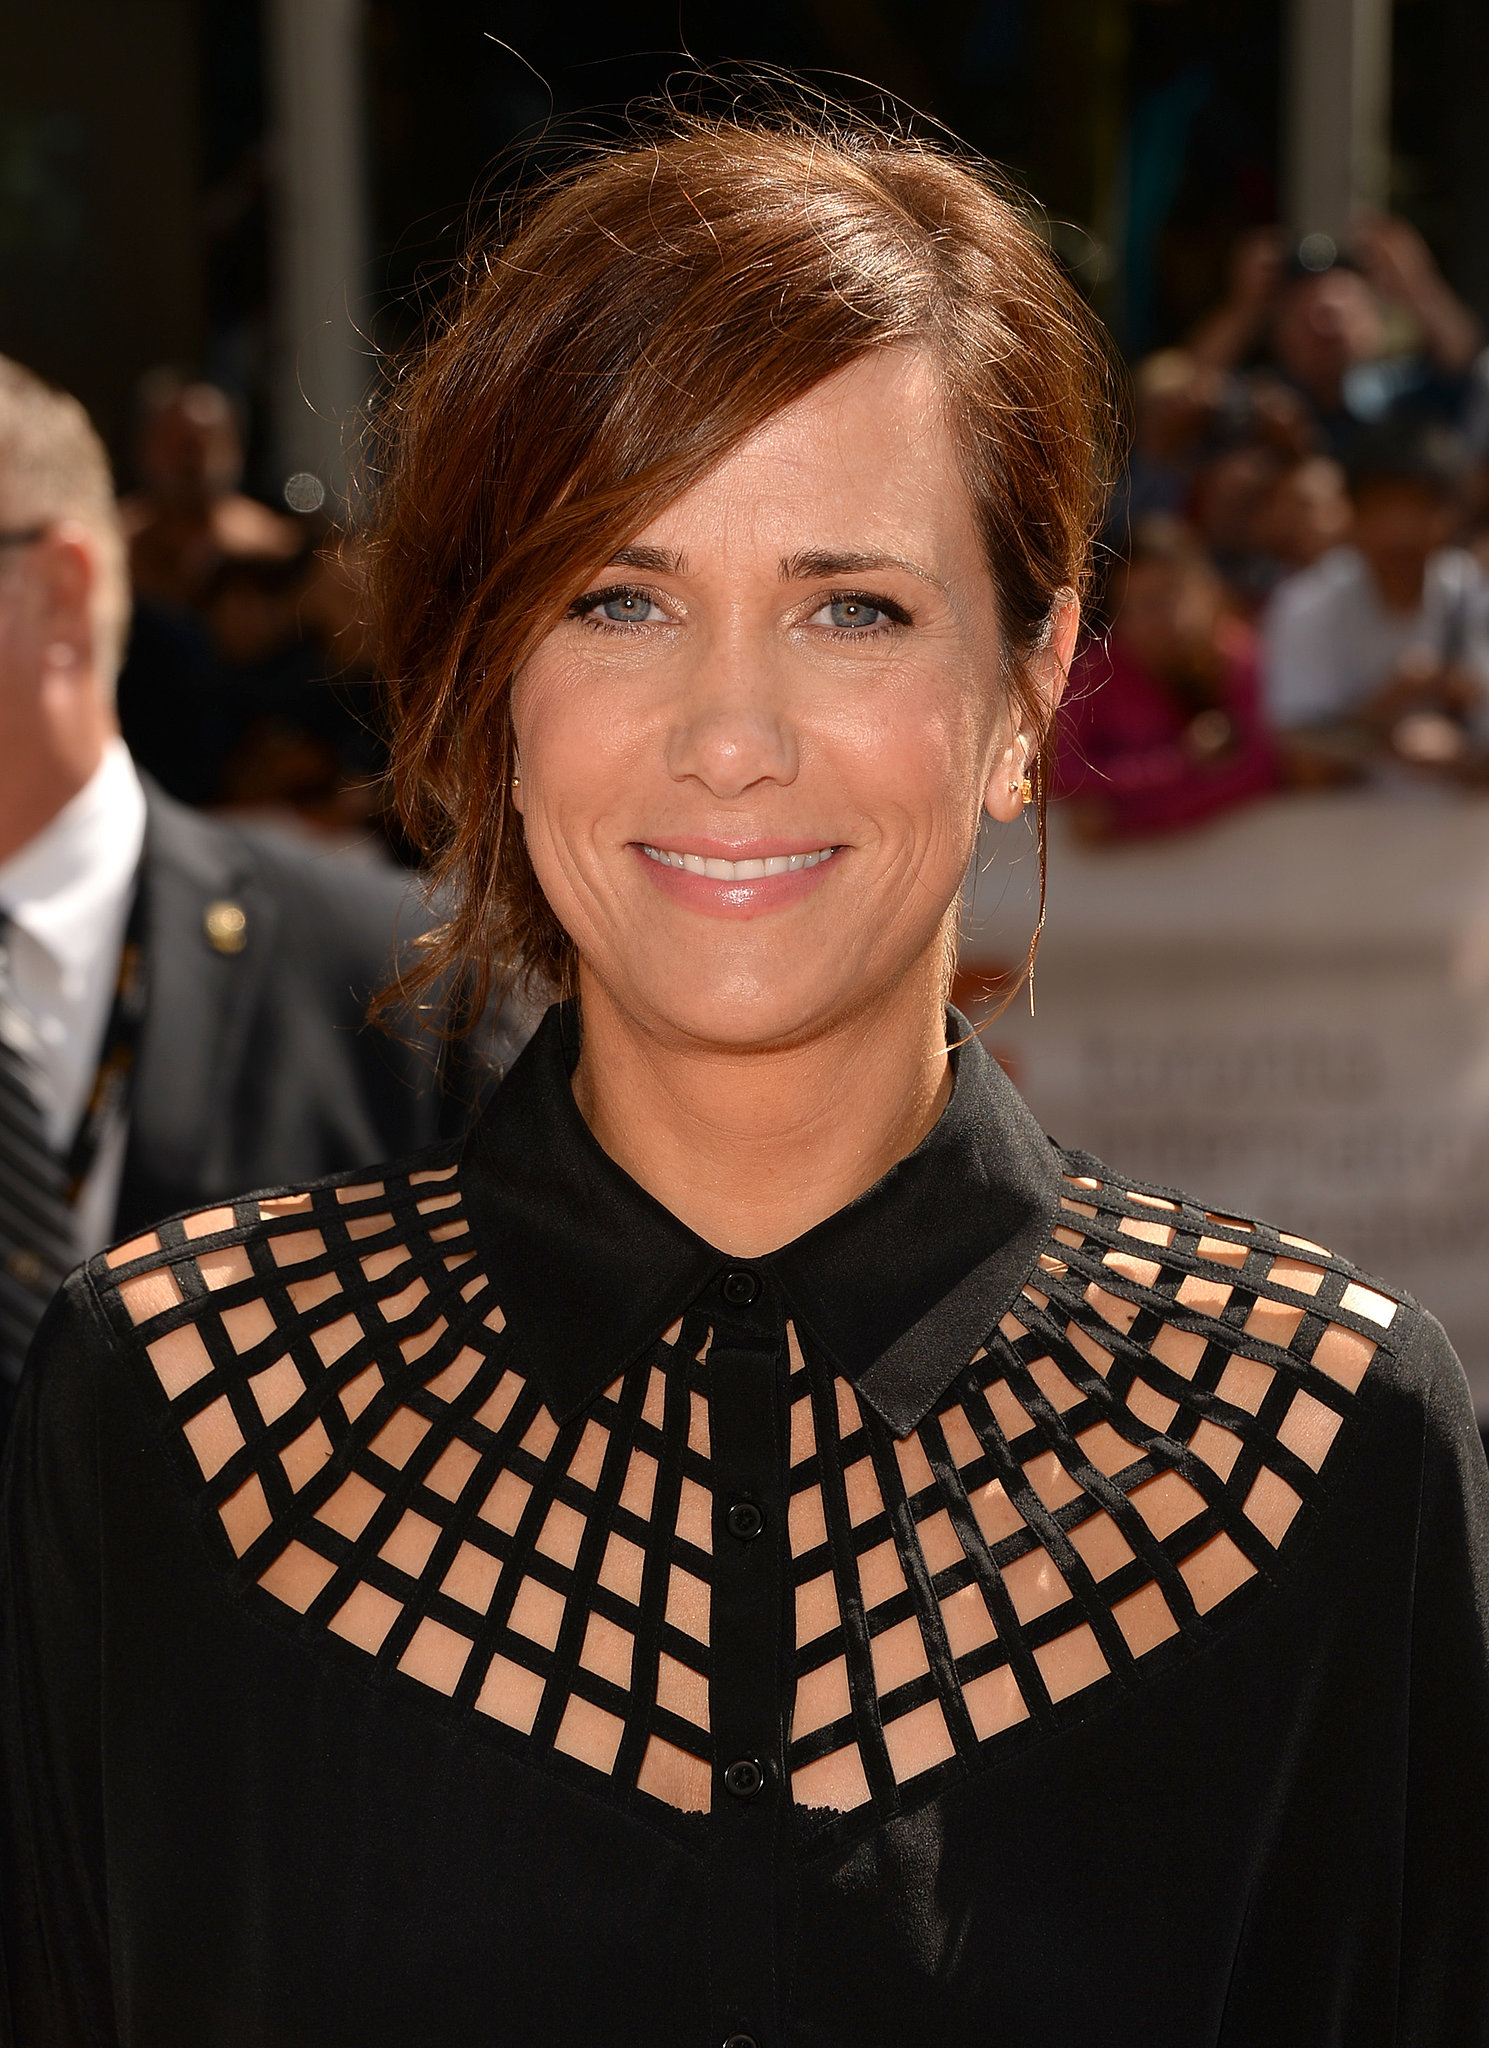 Kristen Wiig wore a fresh-faced makeup look at the Hateship Loveship premiere at TIFF.